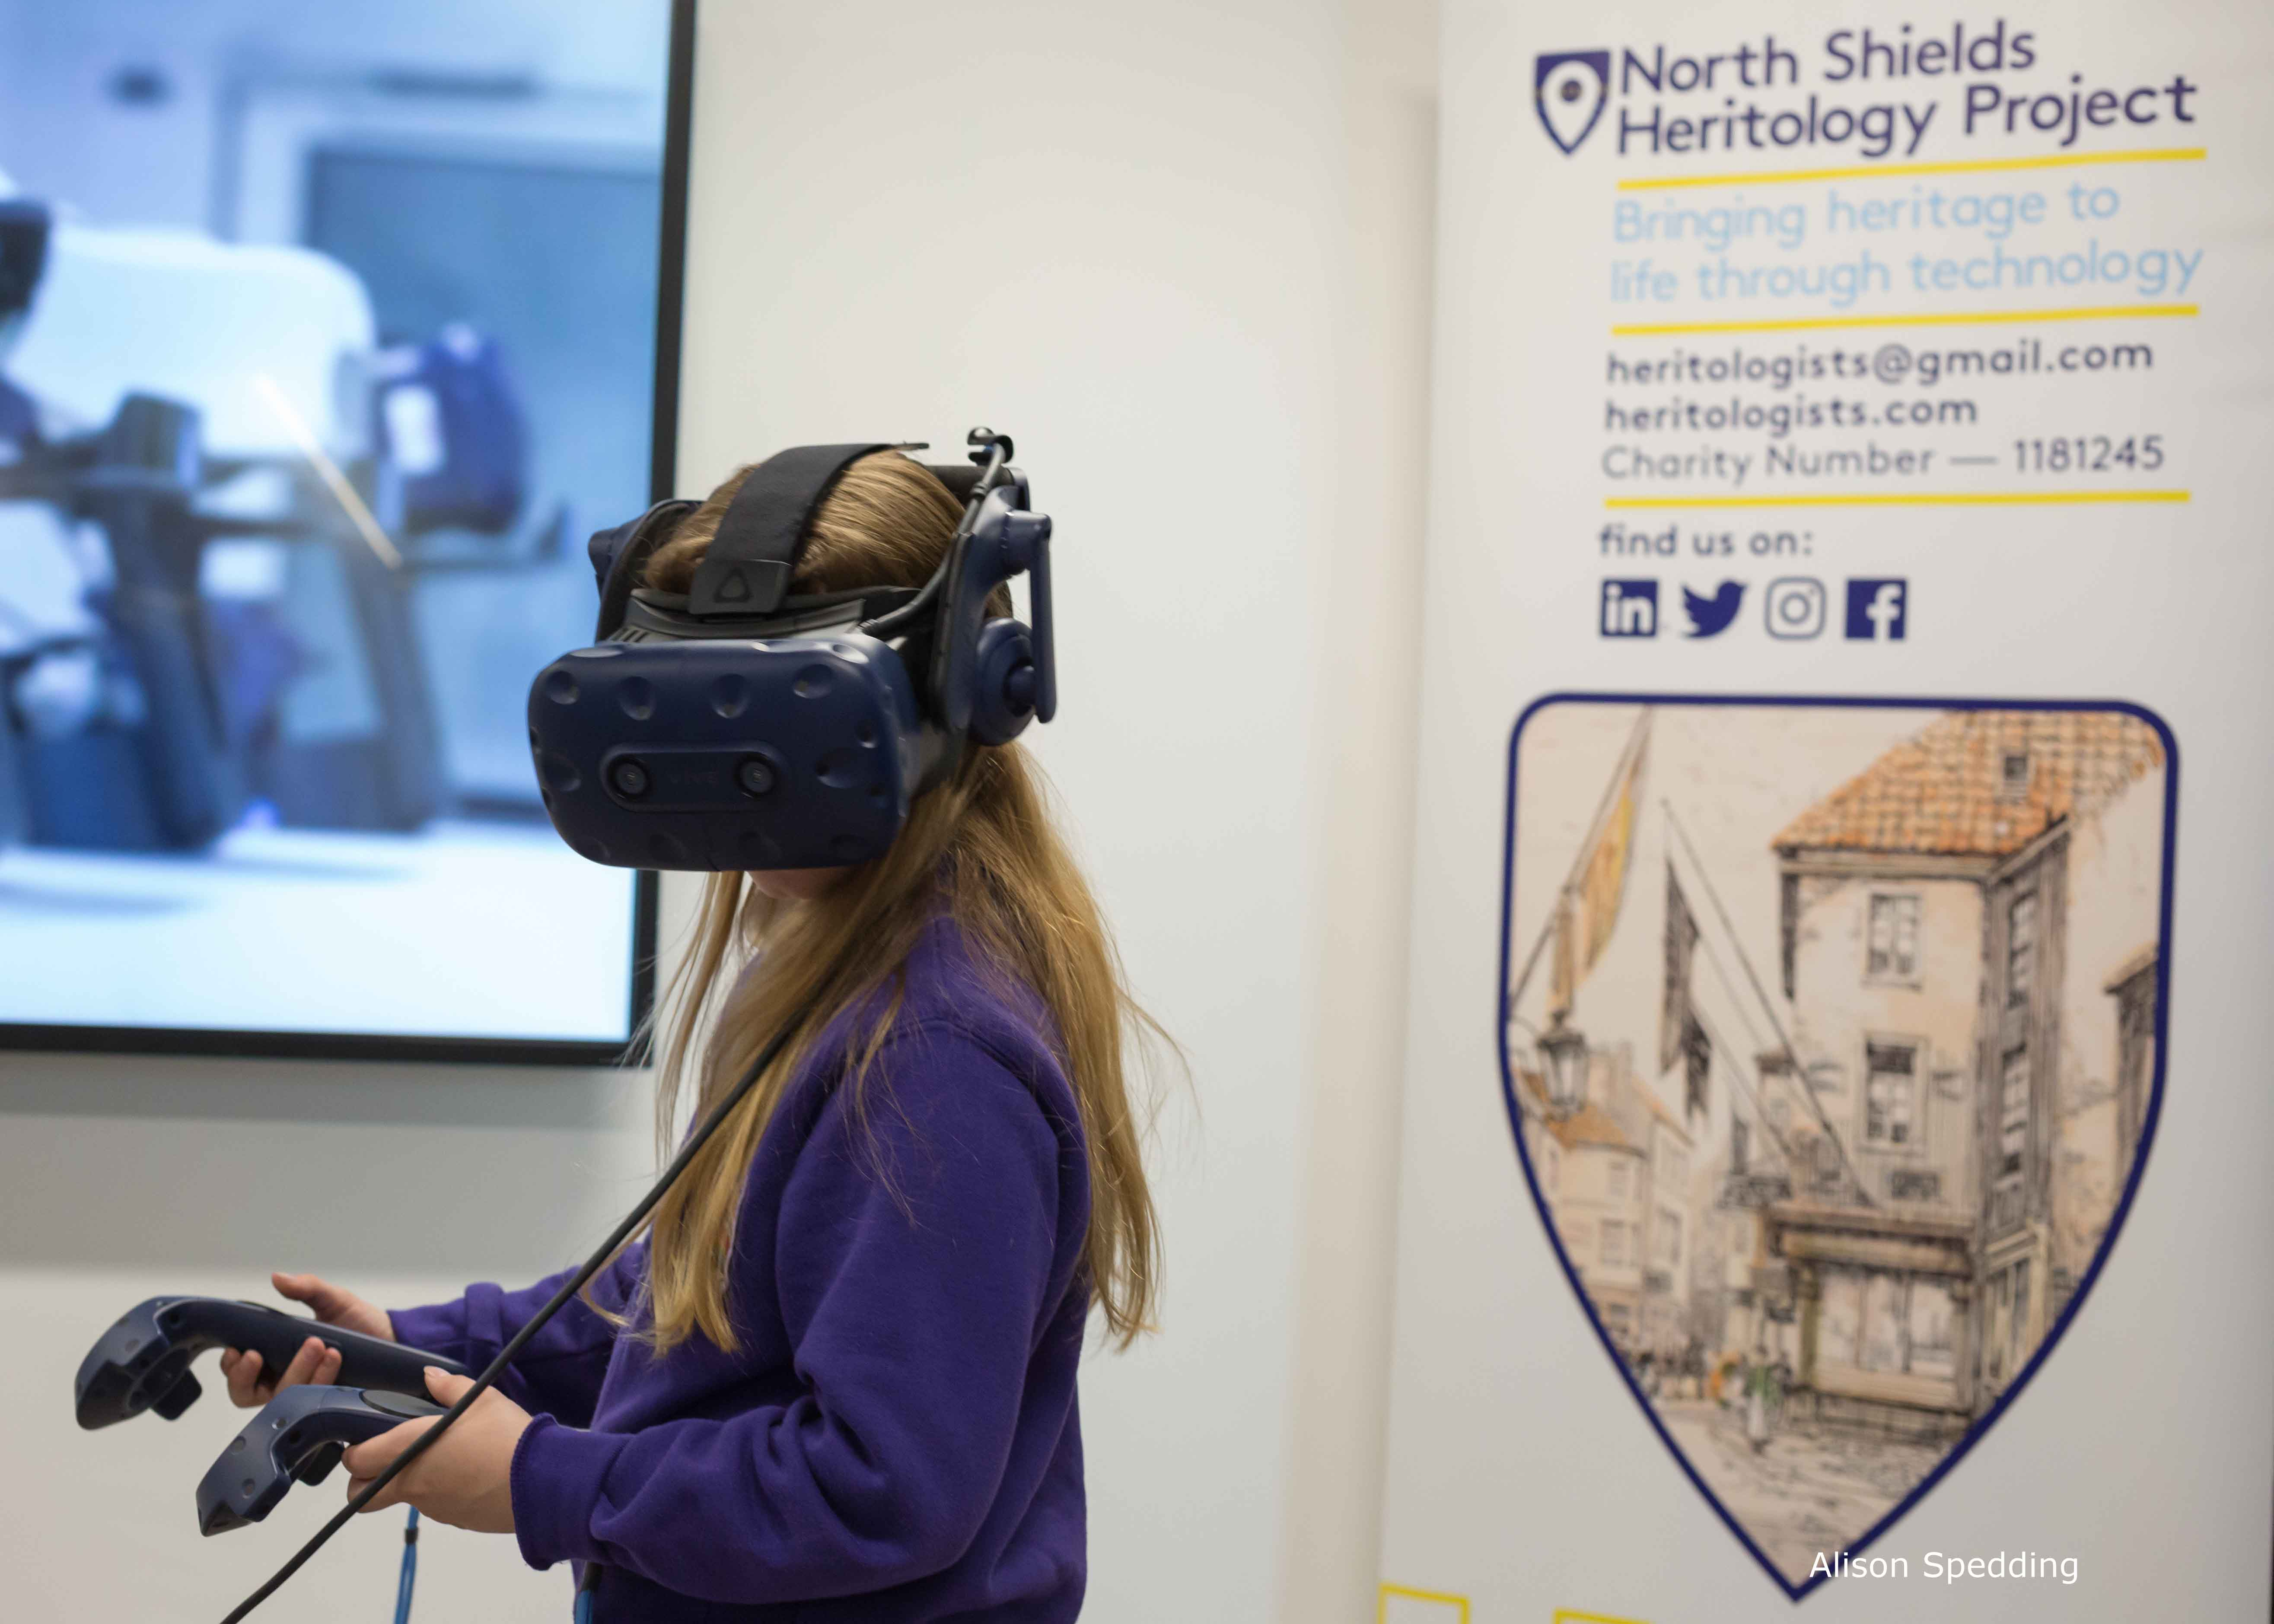 A child wearing a VR headset in front of the North Shields Heritology banner stand